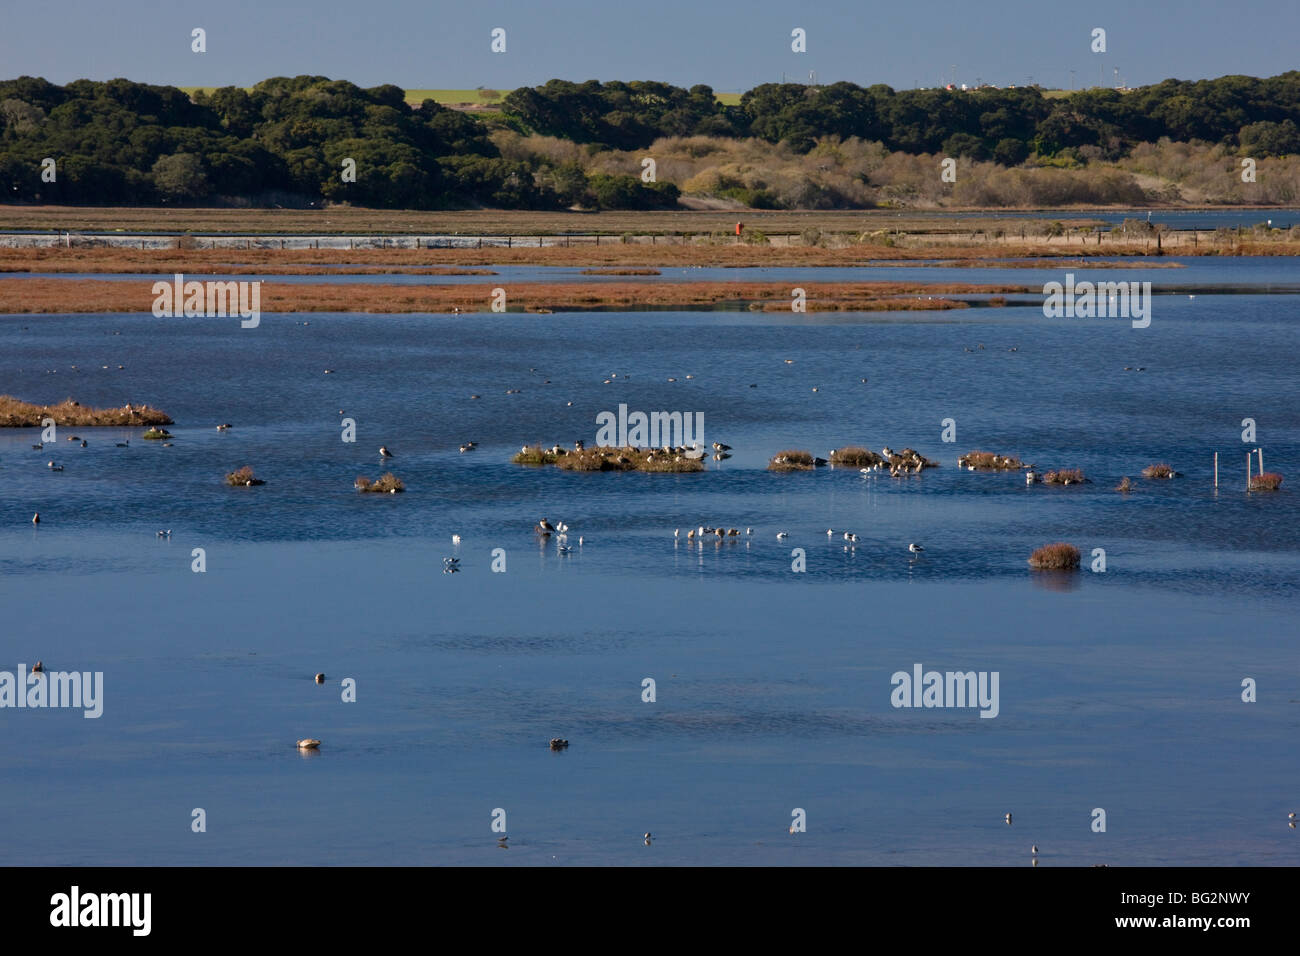 Saltmarsh, mudflats and estuarine habitat, with feeding and roosting waterfowl, at Elkhorn Slough National reserve, - Stock Image